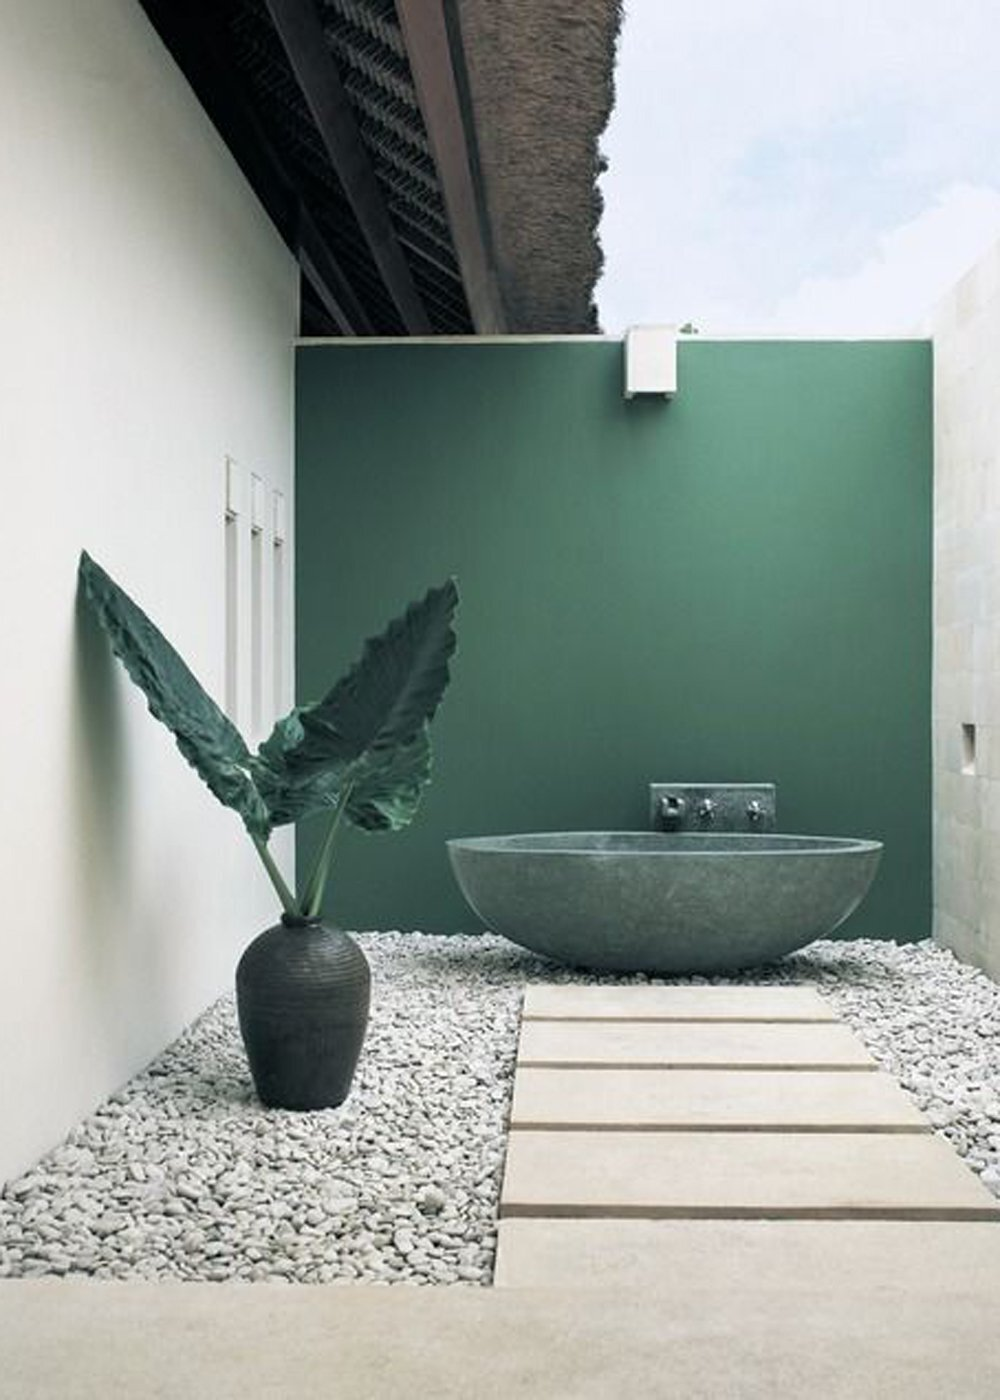 4. Outdoor Bathtub - Why settle for a regular bathtub when you can have one that's outdoors? If you have an enclosed courtyard or private nook in your backyard, this setup could be exactly what your home is missing.